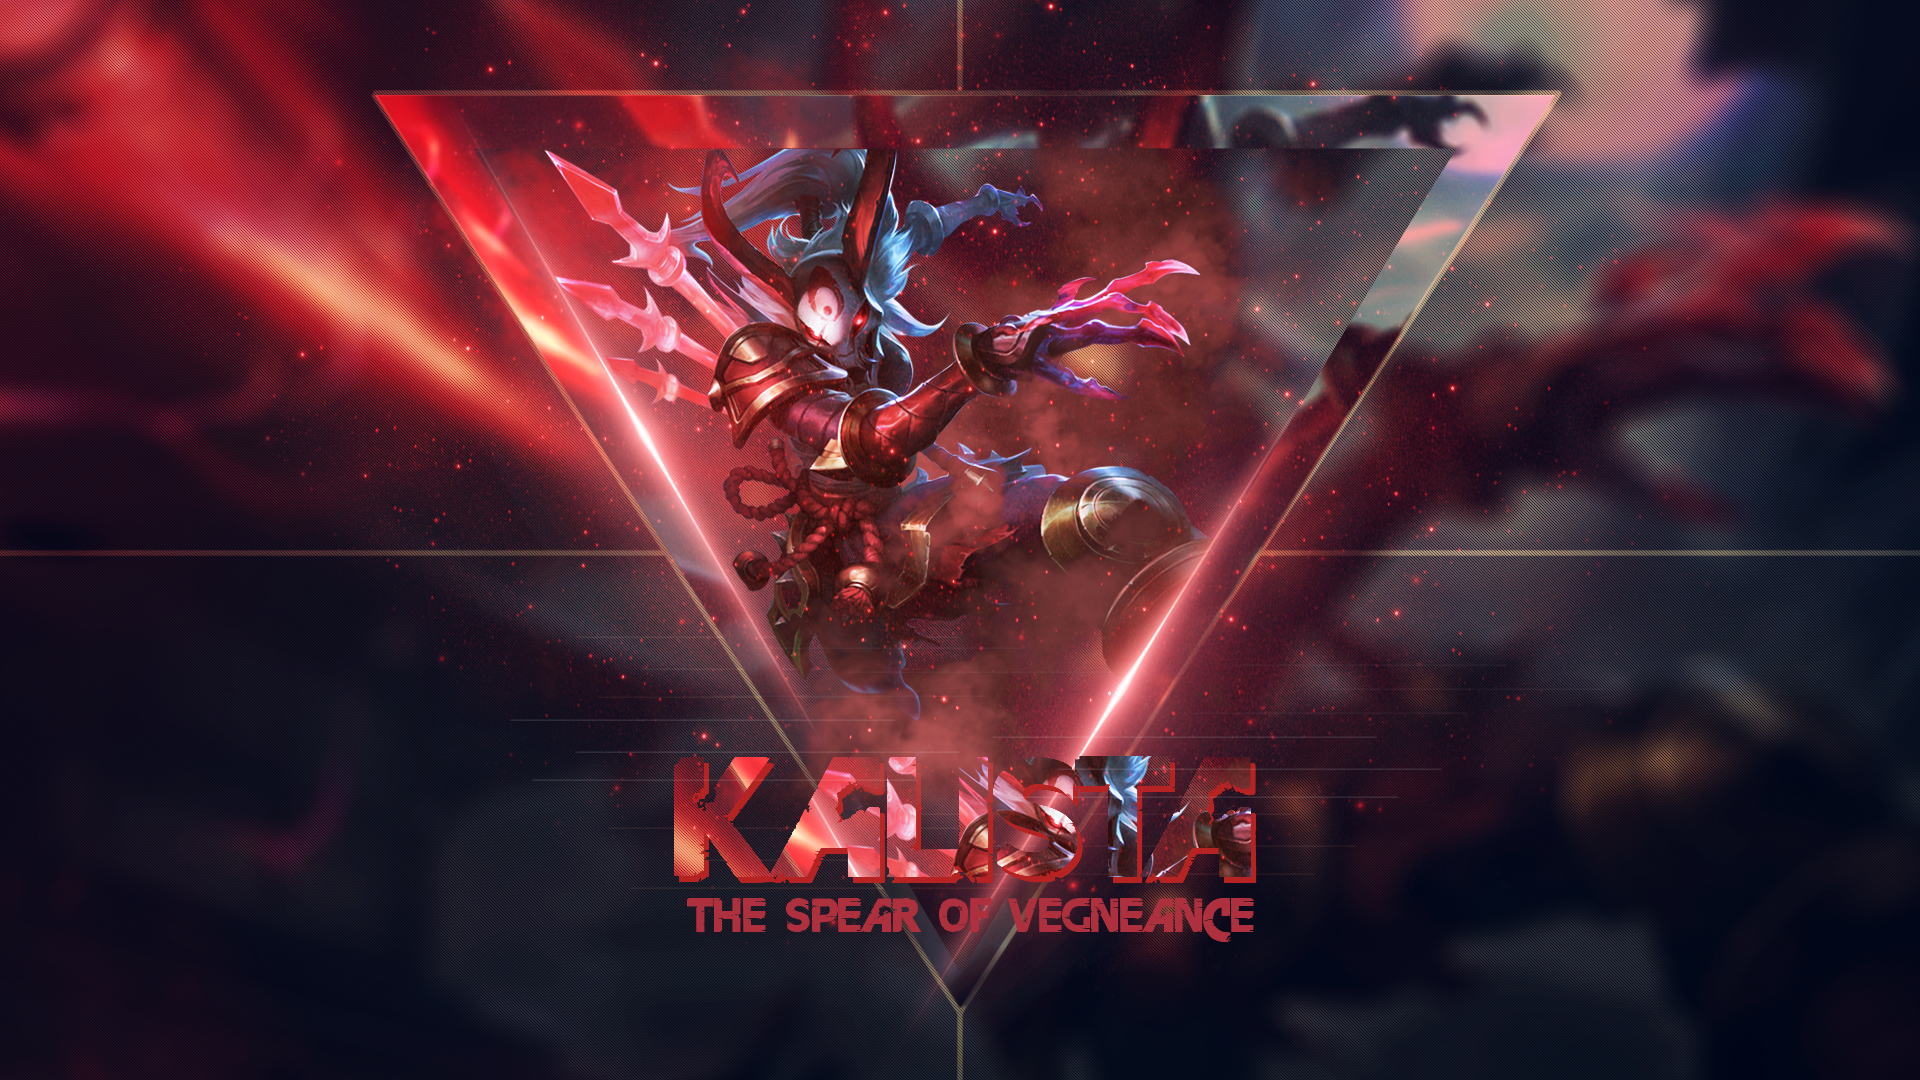 kalista__the_spear_of_vegeance___wallpap